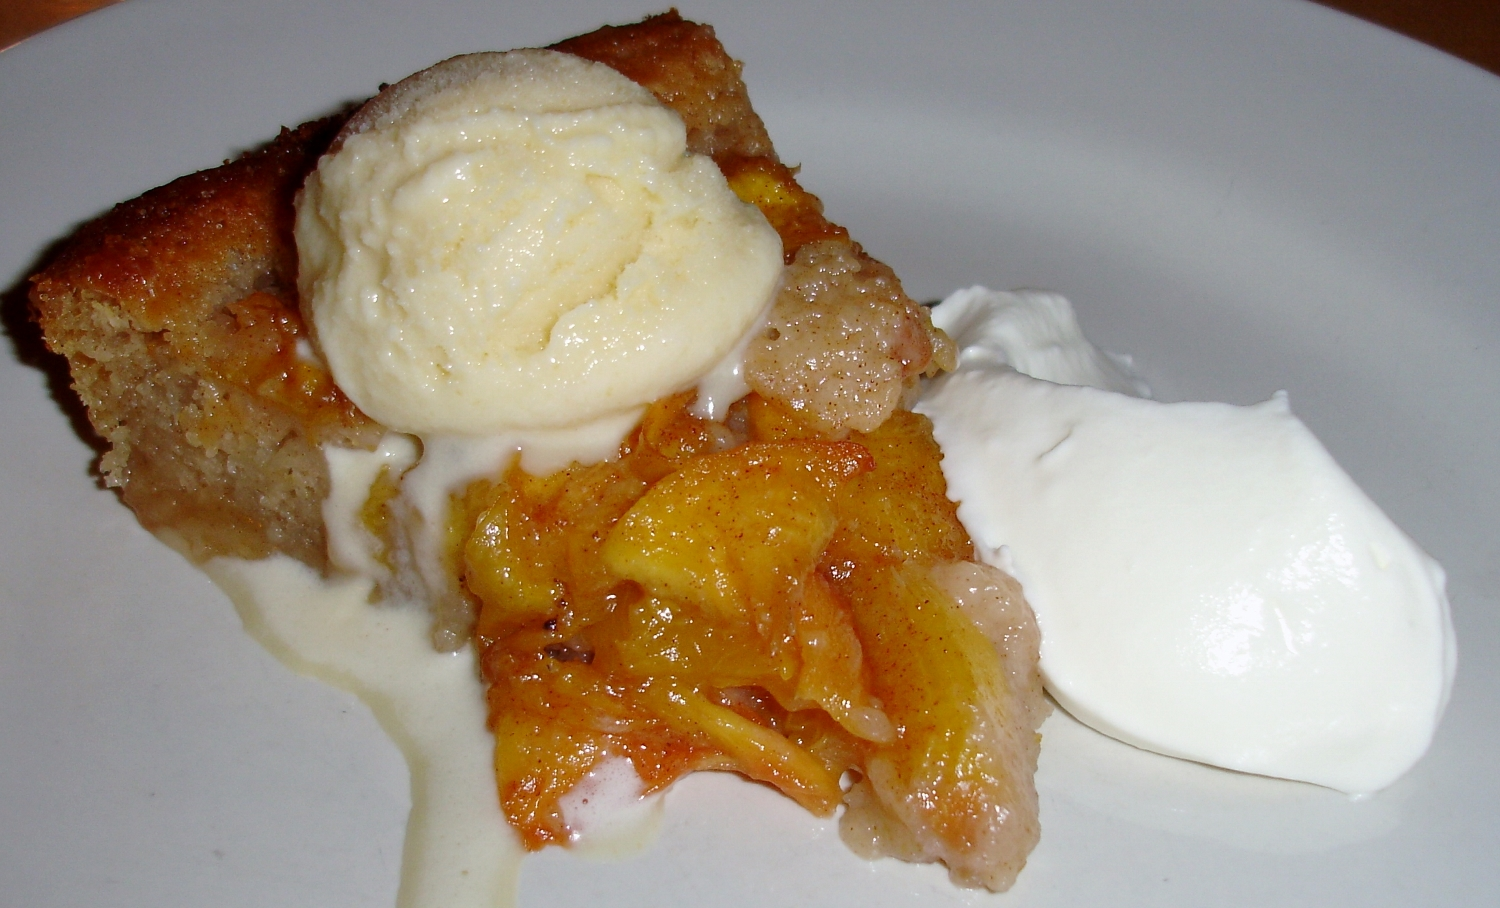 Peach cobbler with buttermilk brandy brown butter ice cream